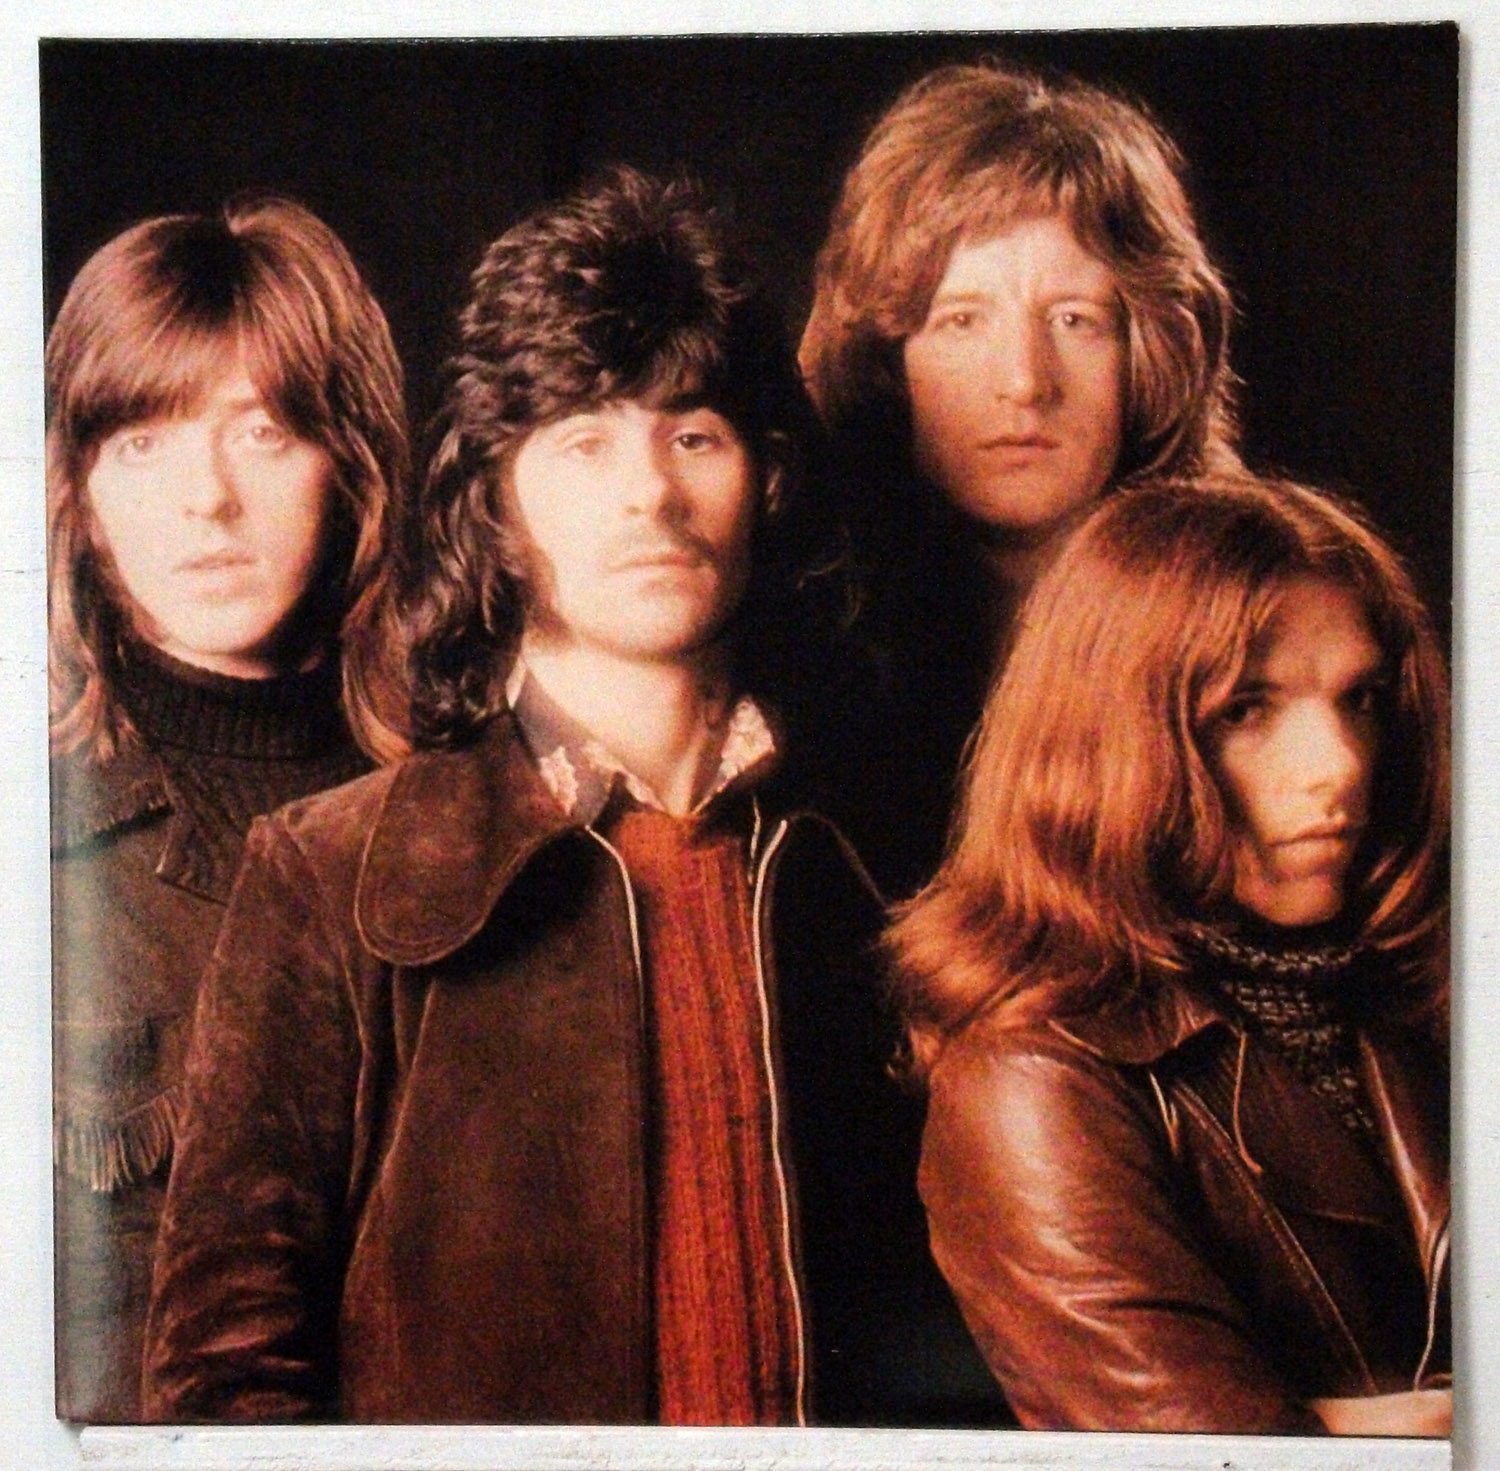 Badfinger Straight Up